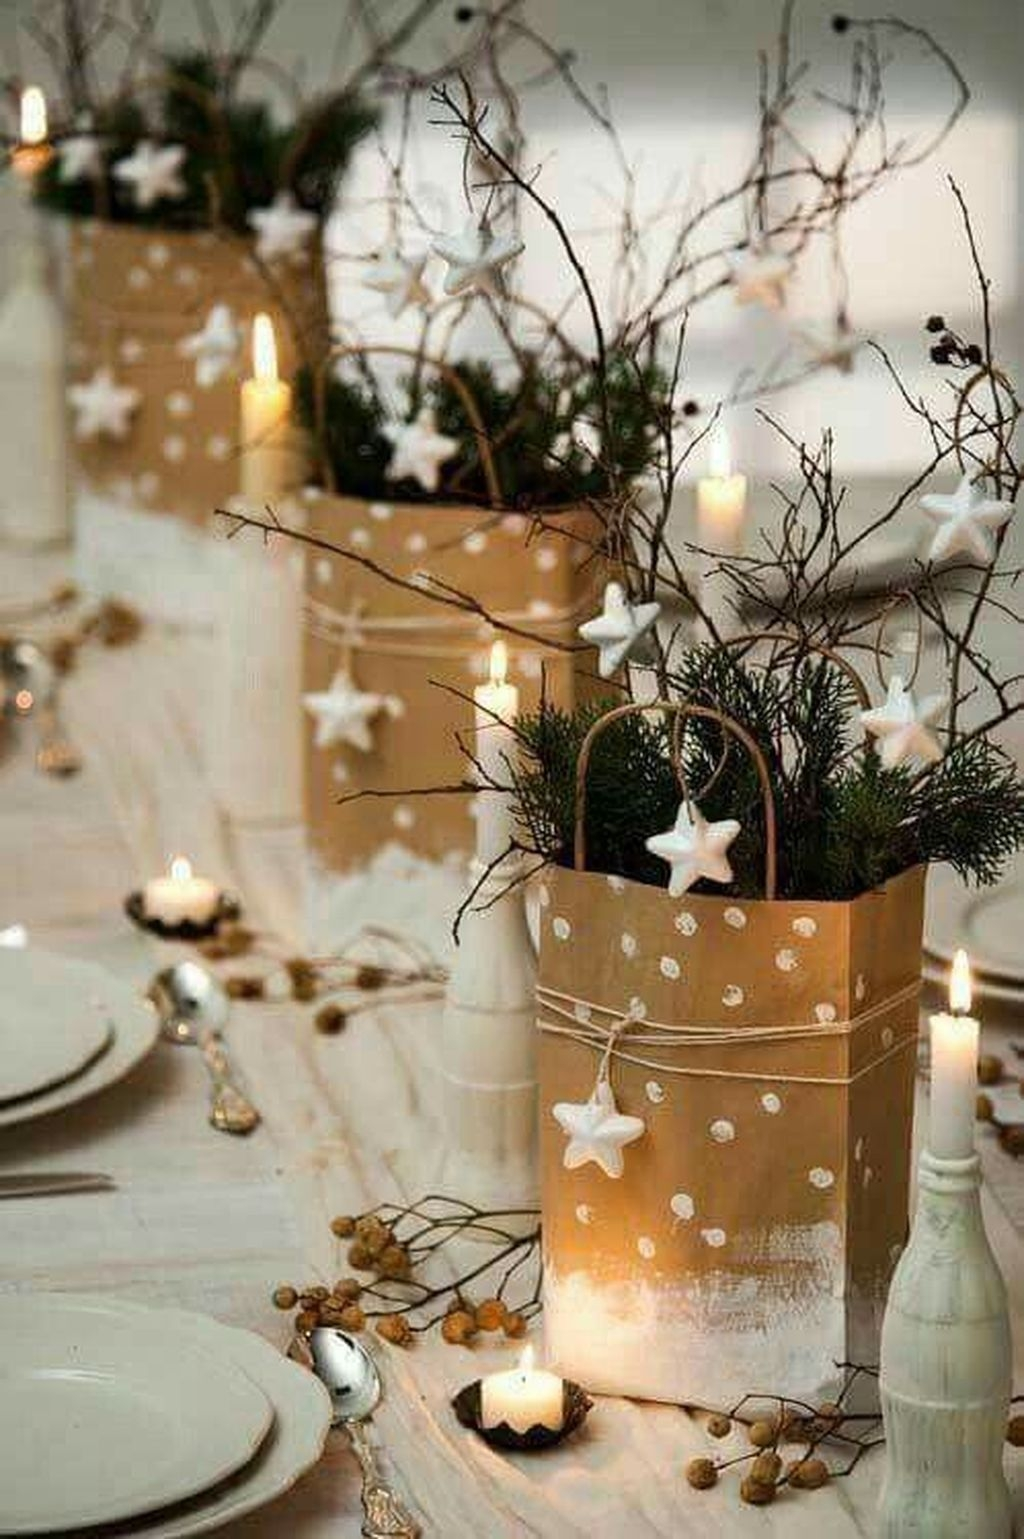 The Best Winter Table Decorations You Need To Try 08